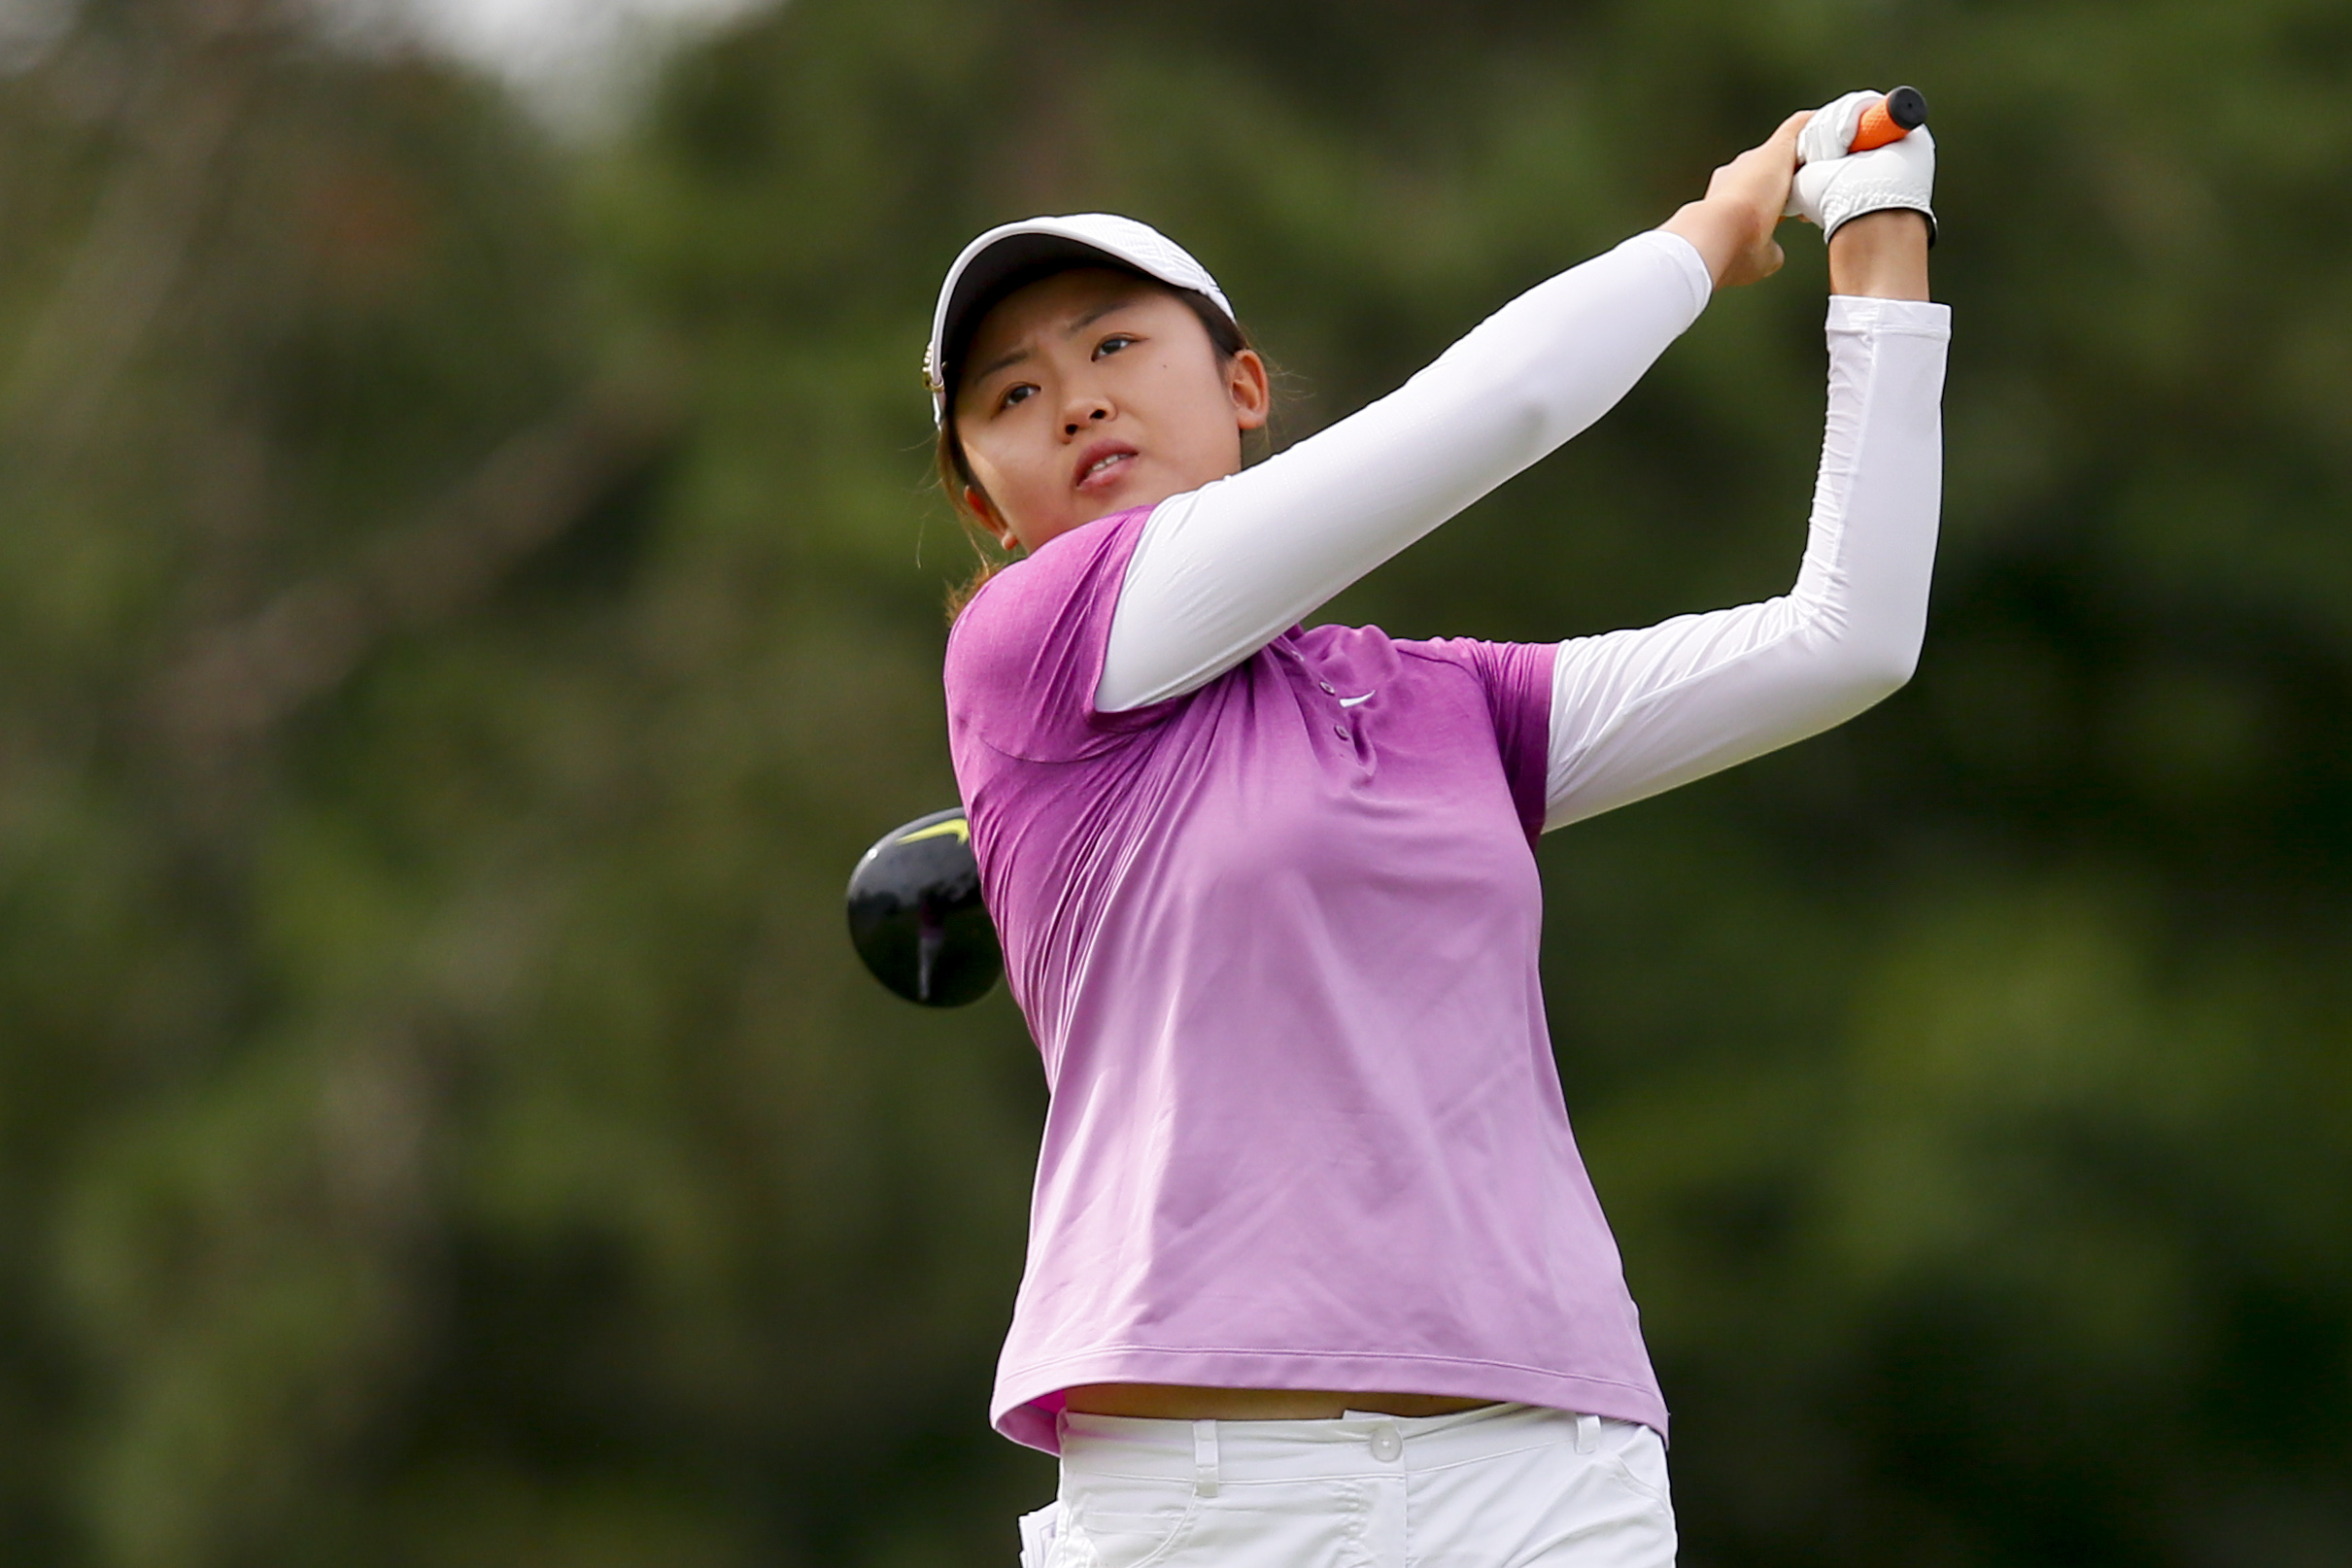 Simin Feng, of China, tees off on the 15th hole during the first round of the Marathon Classic golf tournament at Highland Meadows Golf Club in Sylvania, Ohio, Thursday, July 16, 2015. (AP Photo/Rick Osentoski)